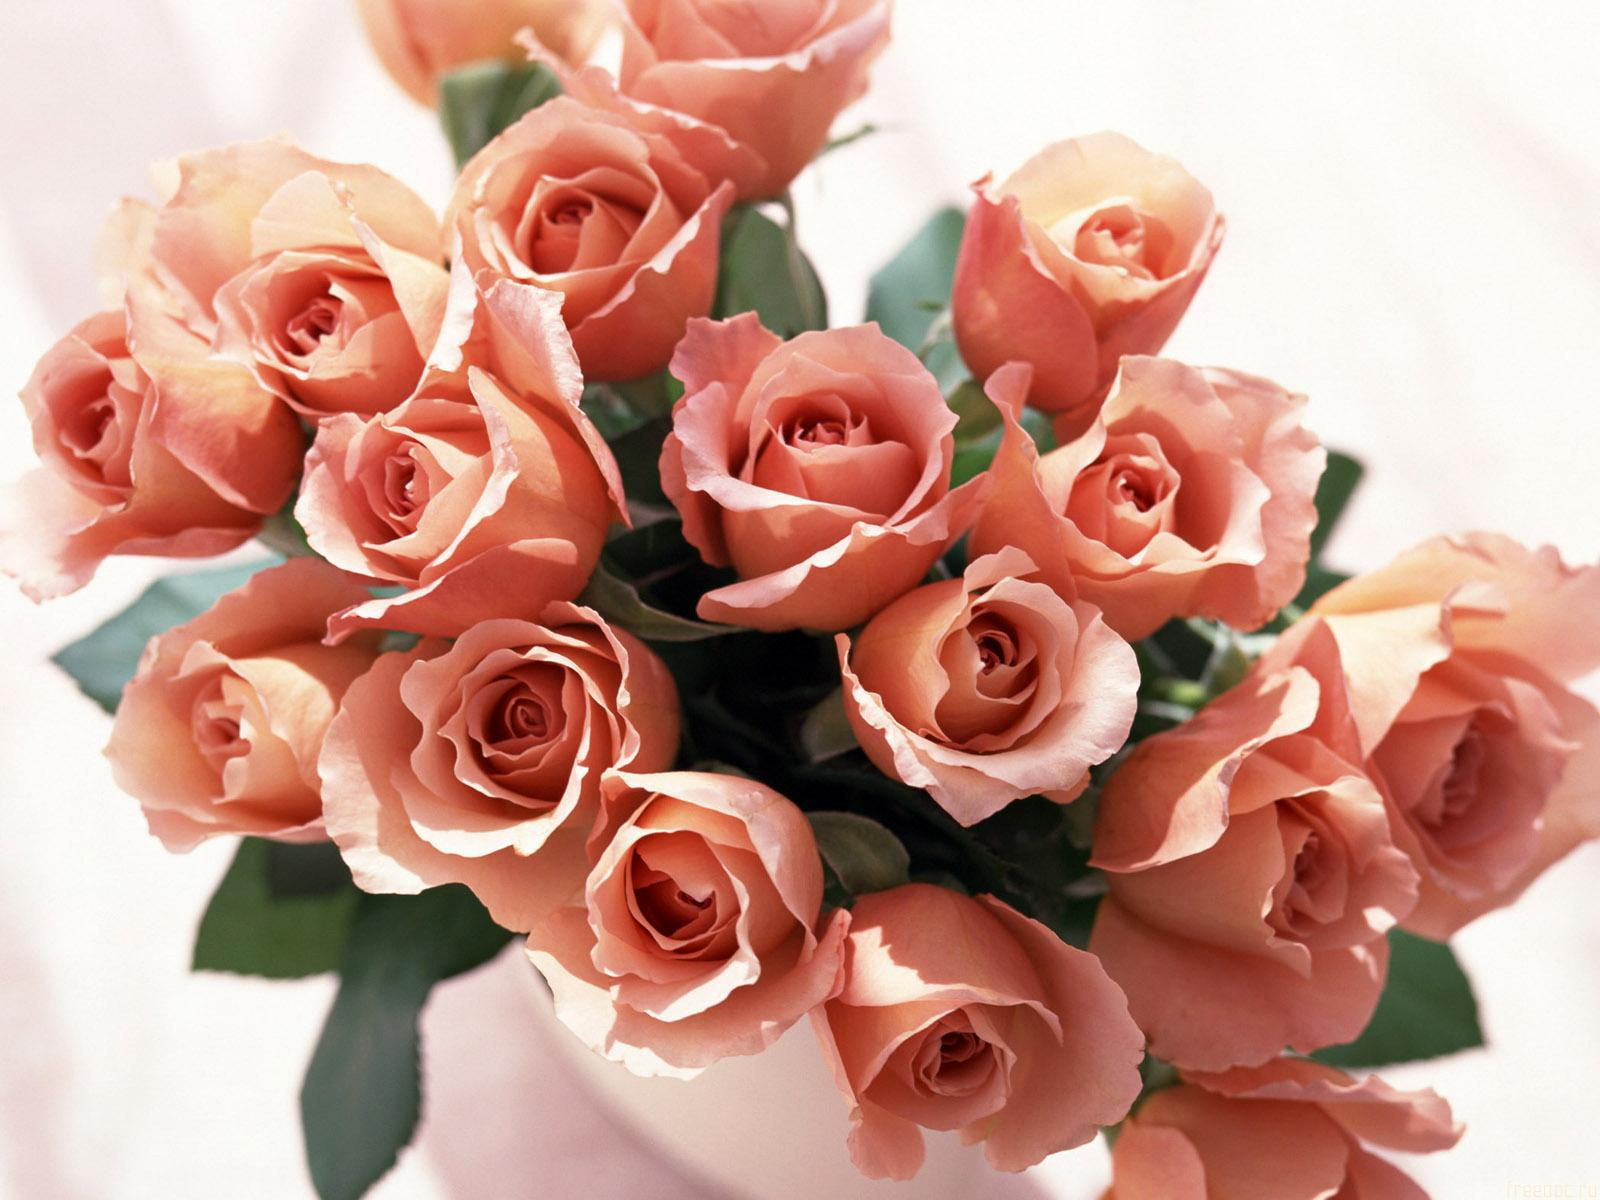 Roses Bunch Wallpapers.